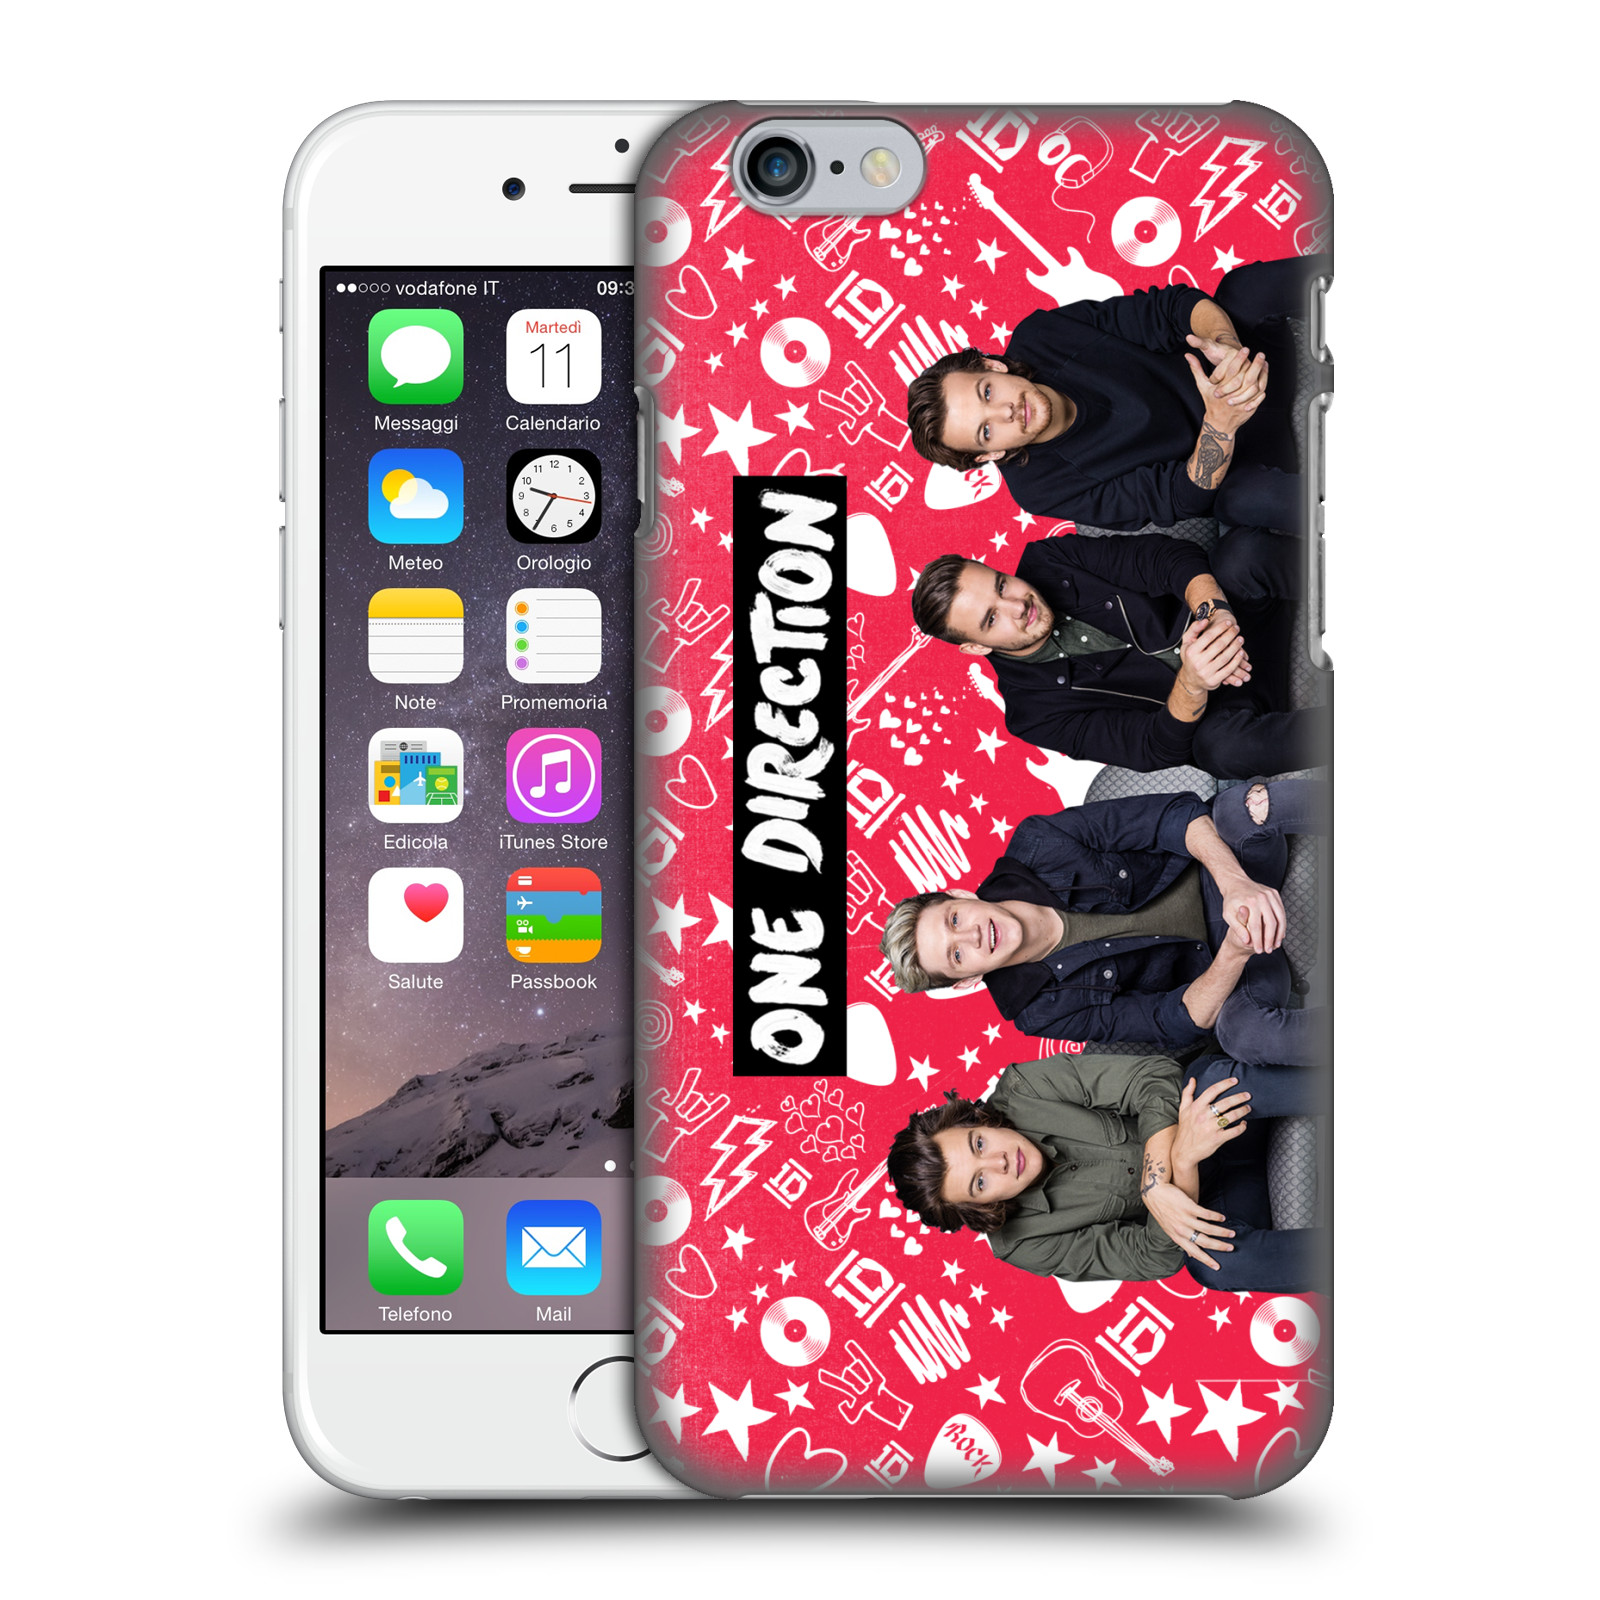 OFFICIAL-ONE-DIRECTION-GROUP-PHOTO-DOODLE-ICON-BACK-CASE-FOR-APPLE-iPHONE-PHONES